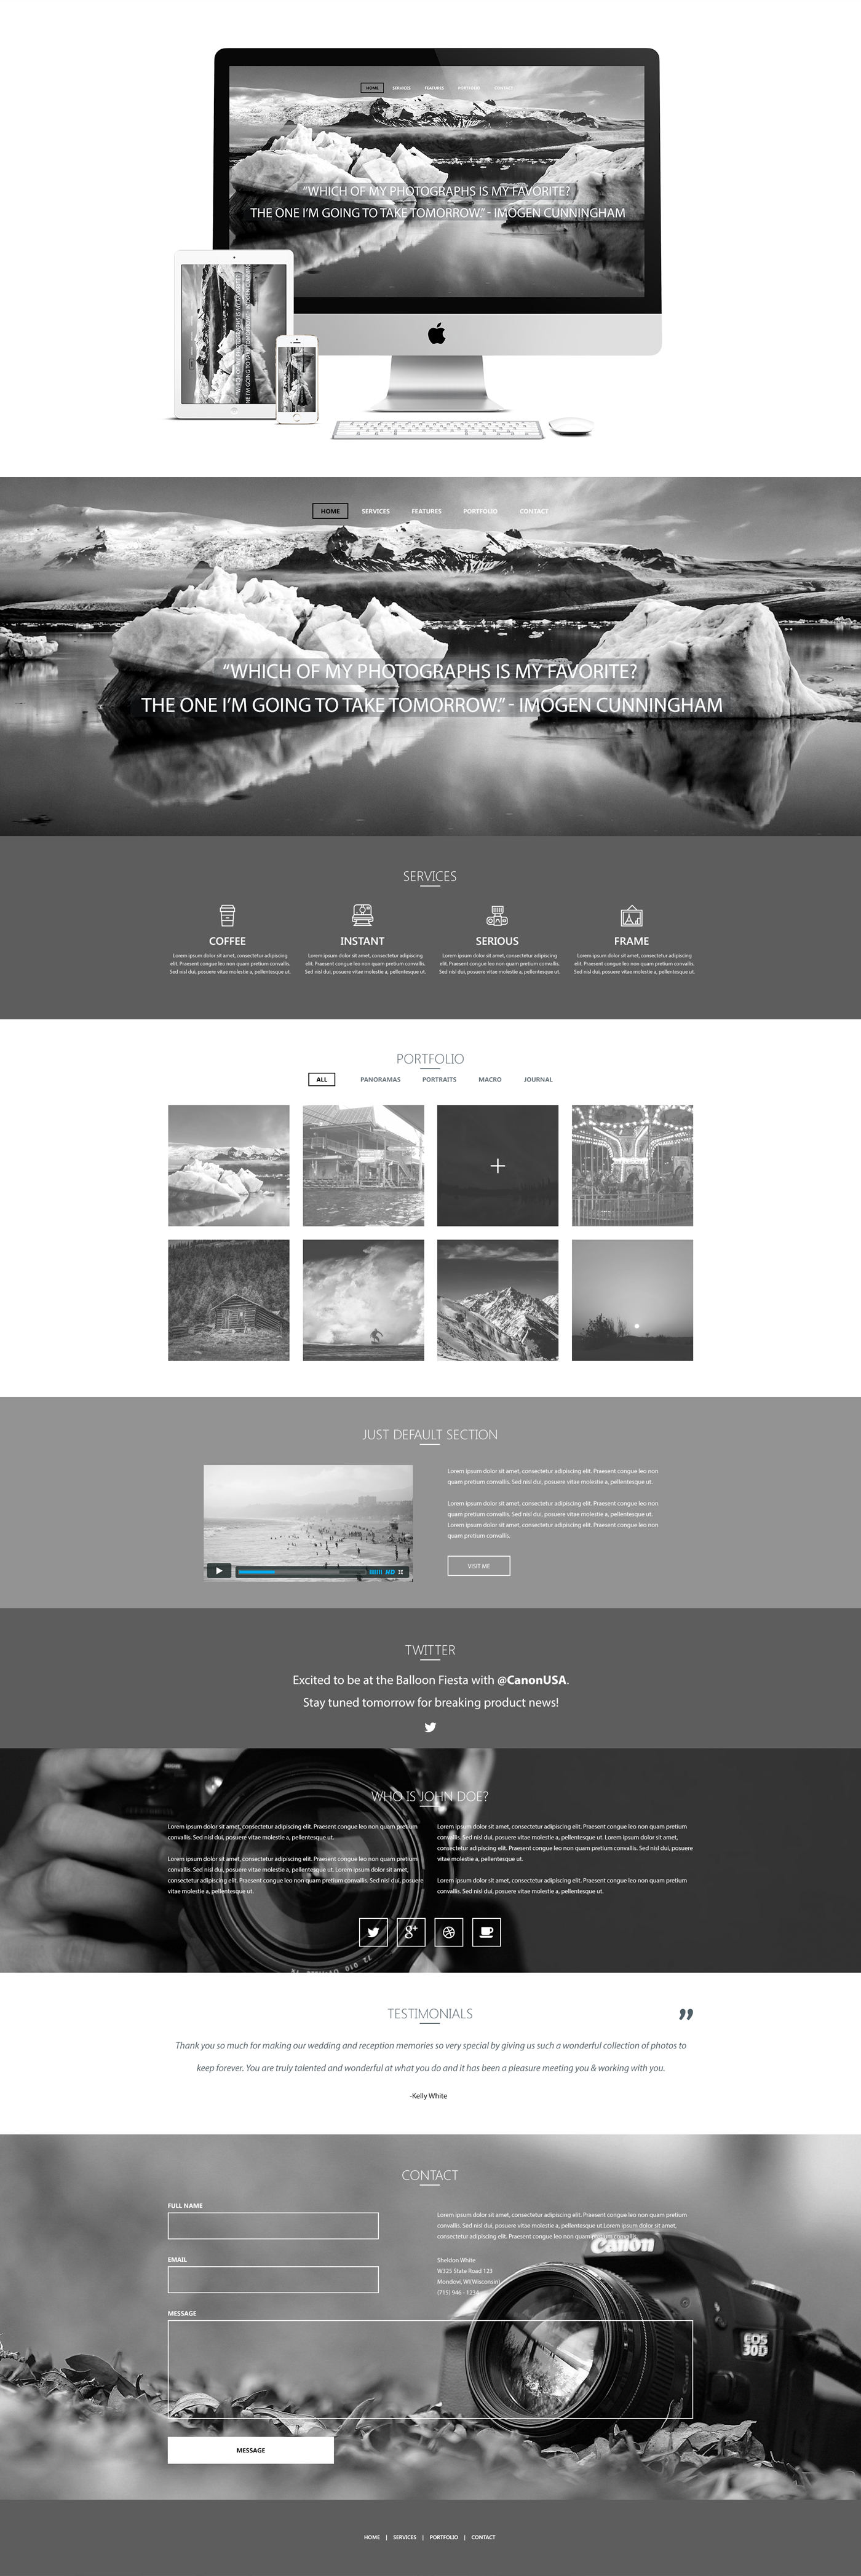 parallax photography website